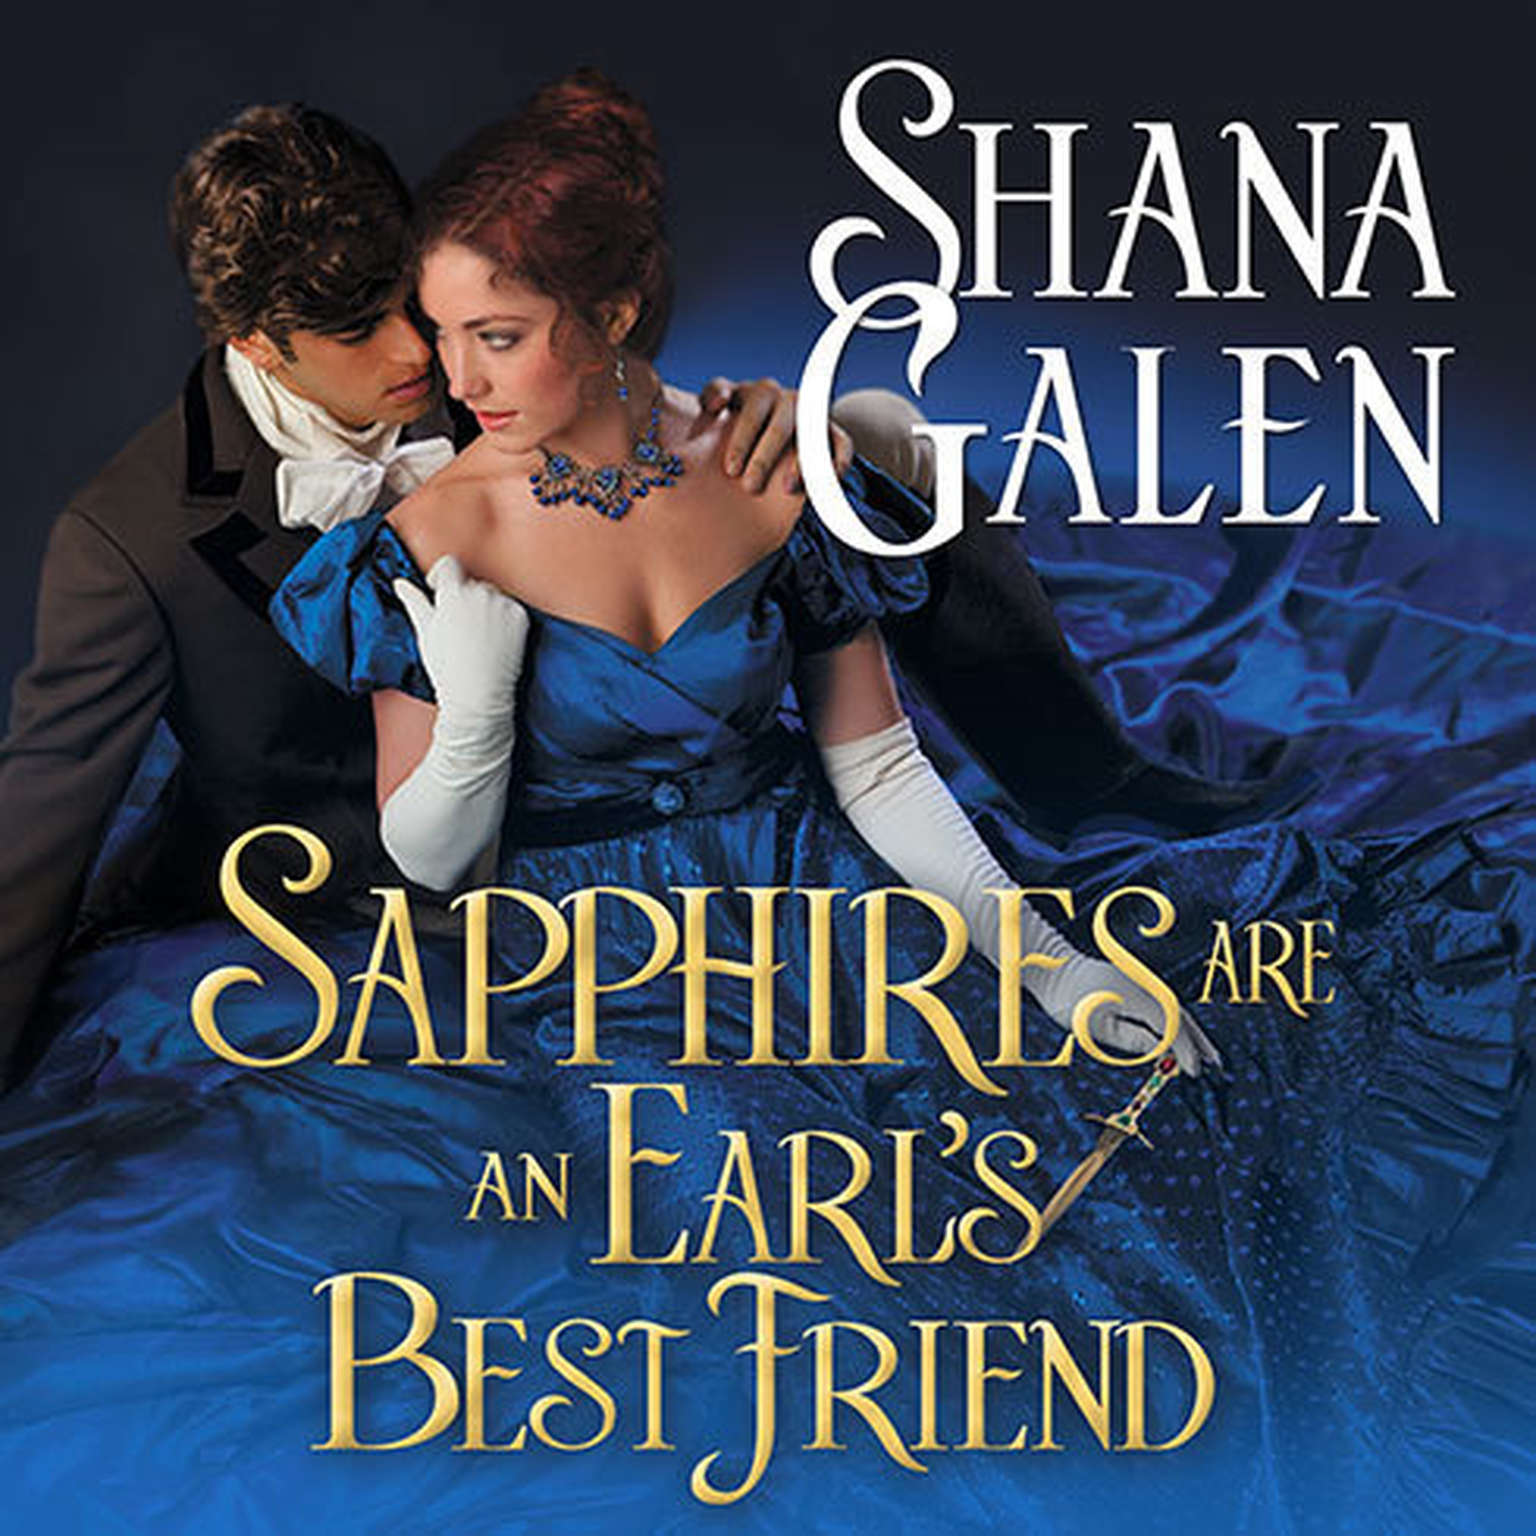 Printable Sapphires Are an Earl's Best Friend Audiobook Cover Art